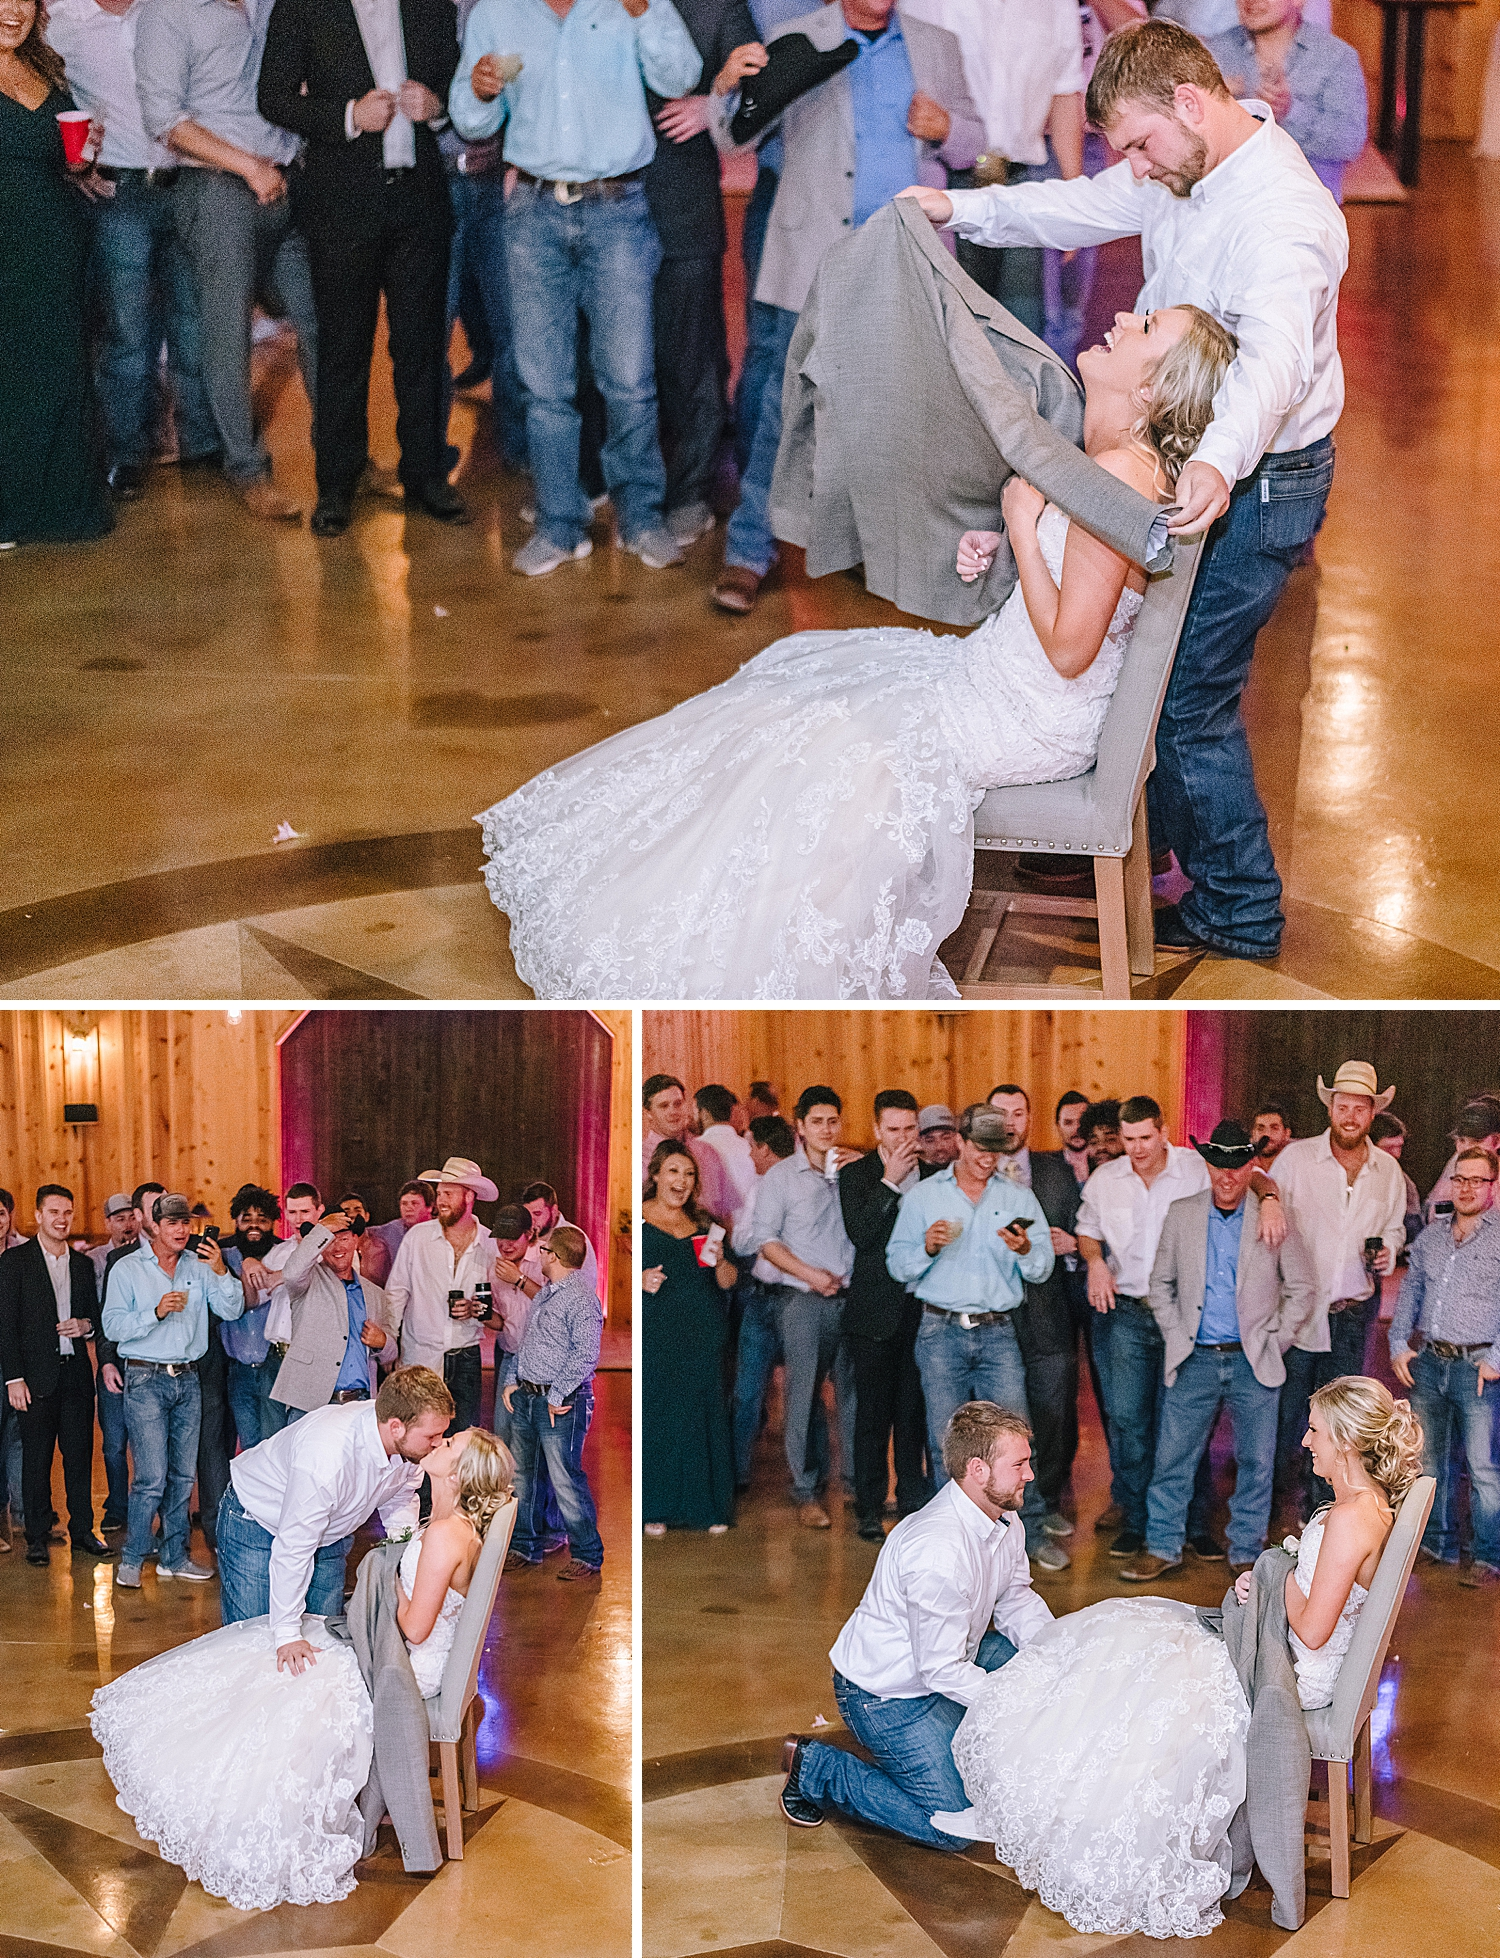 Rackler-Ranch-LaVernia-Texas-Wedding-Carly-Barton-Photography_0169.jpg